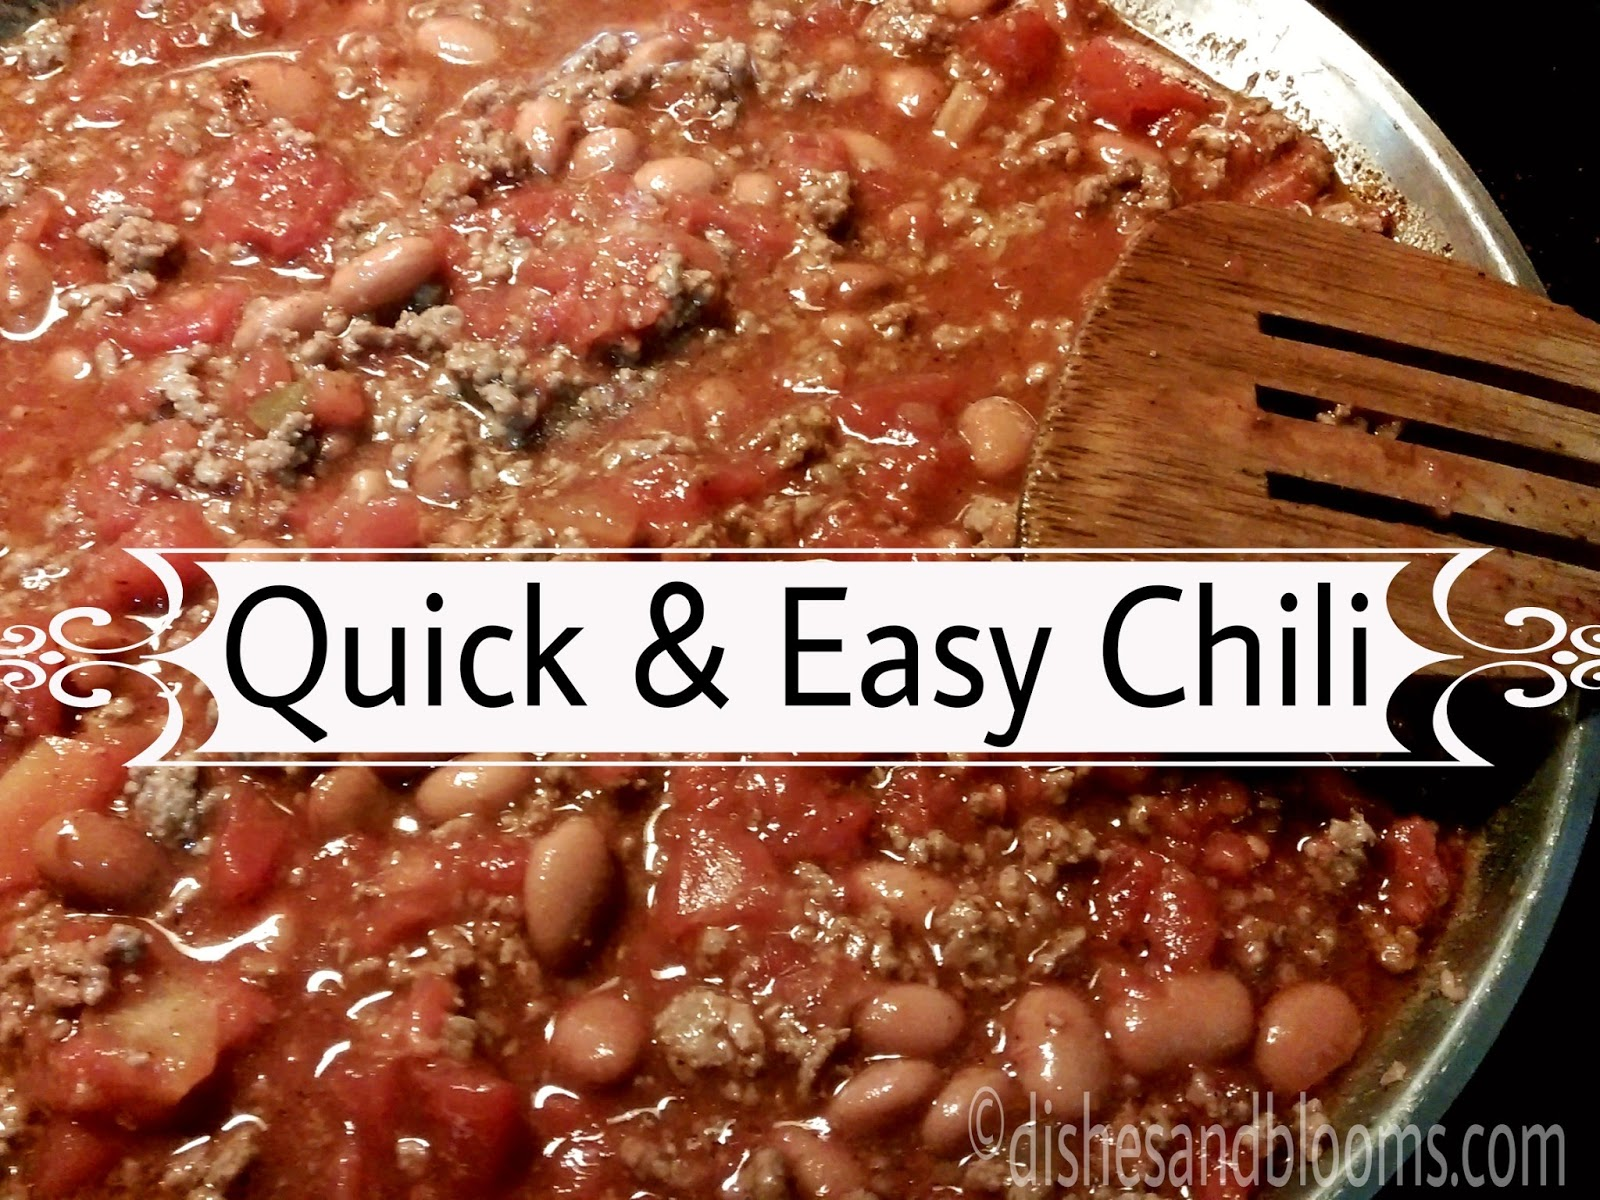 This recipe is quick and easy, gluten free, and perfect for those ...